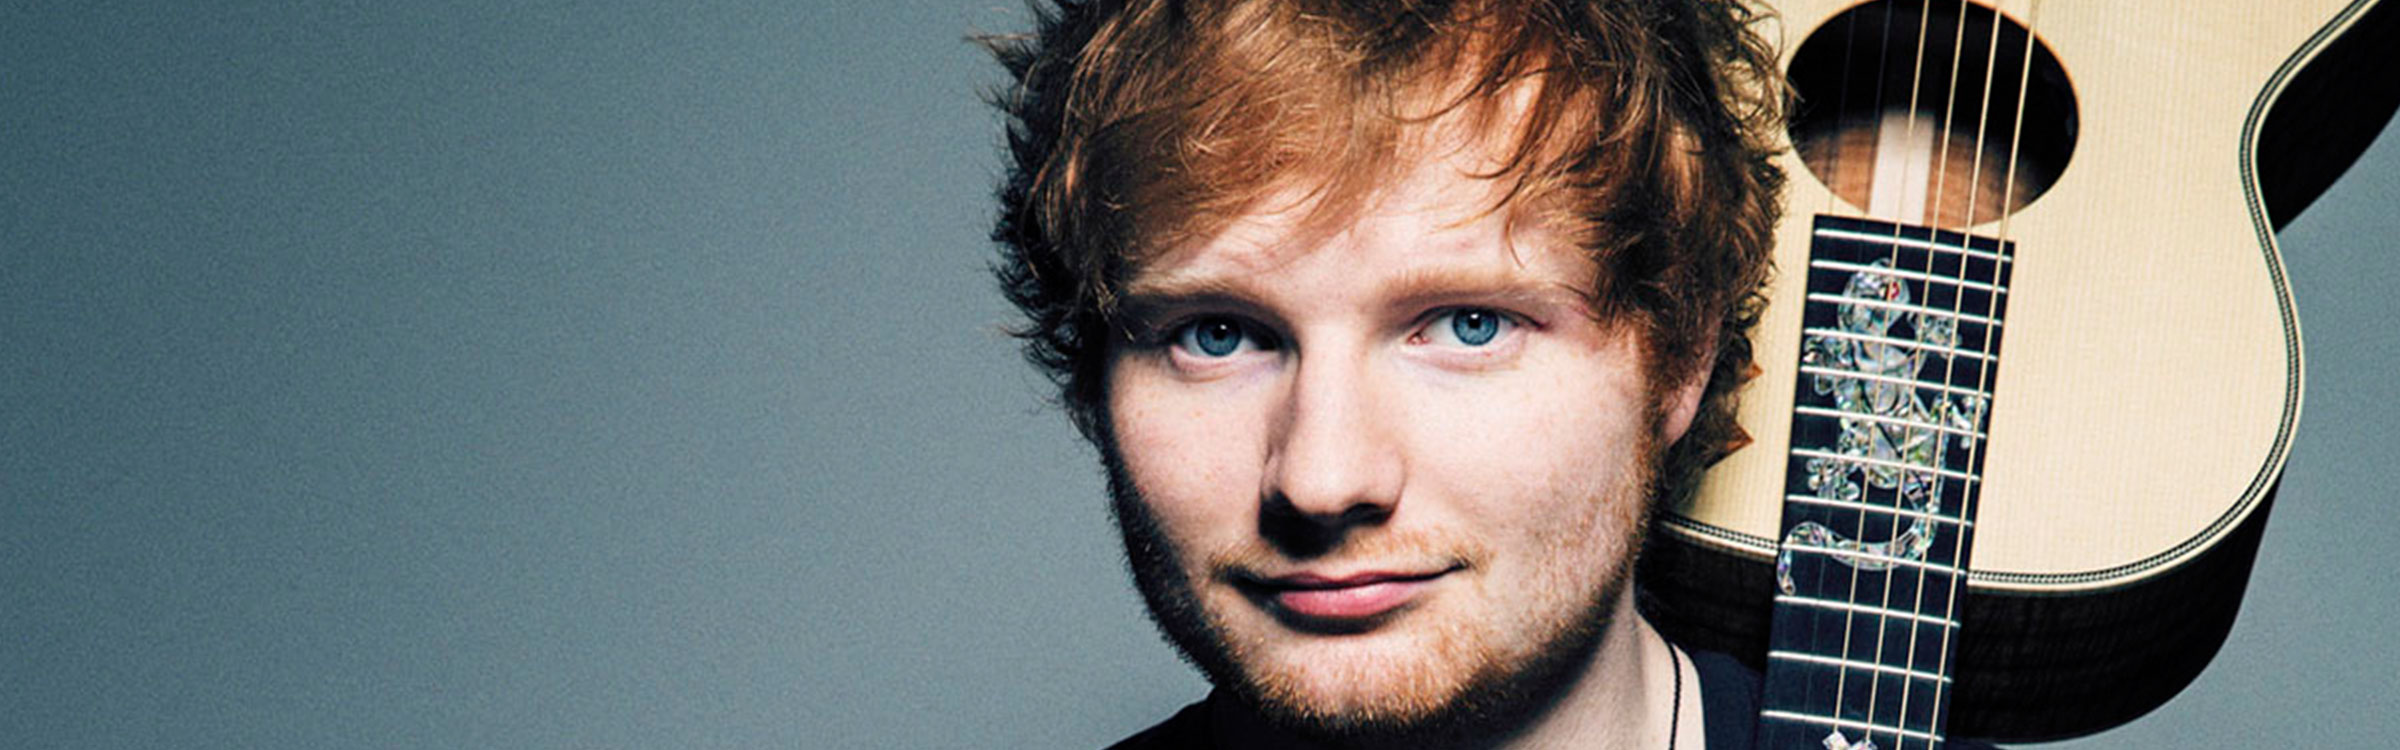 Ed sheeran header 6mrt